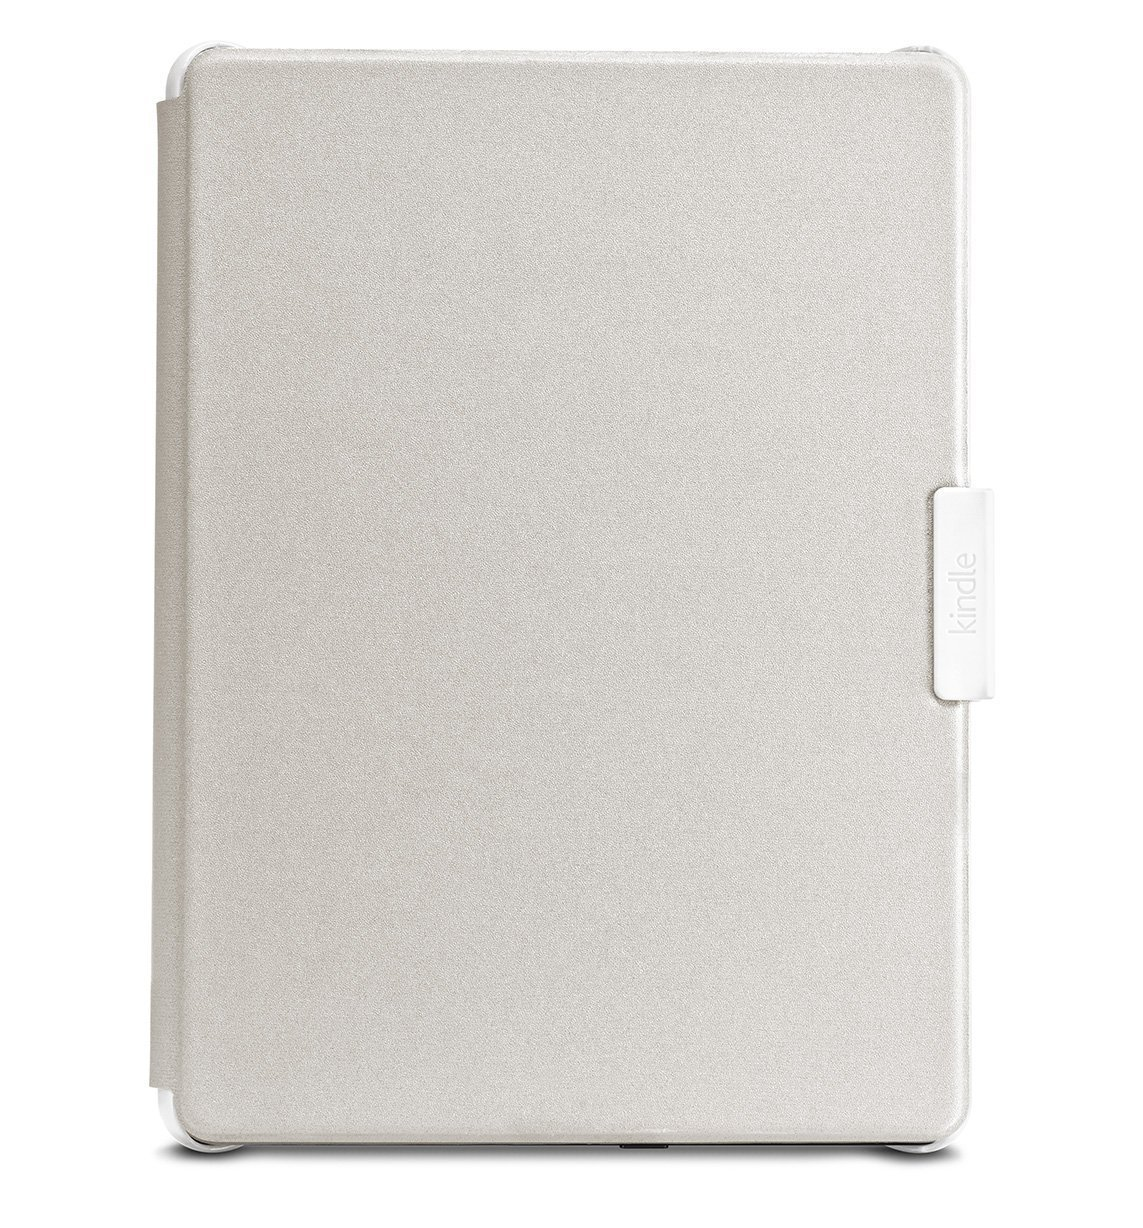 Чехол обложка Amazon Cover Case for All-New Kindle 8 (2016) White/Grey. Фото N2